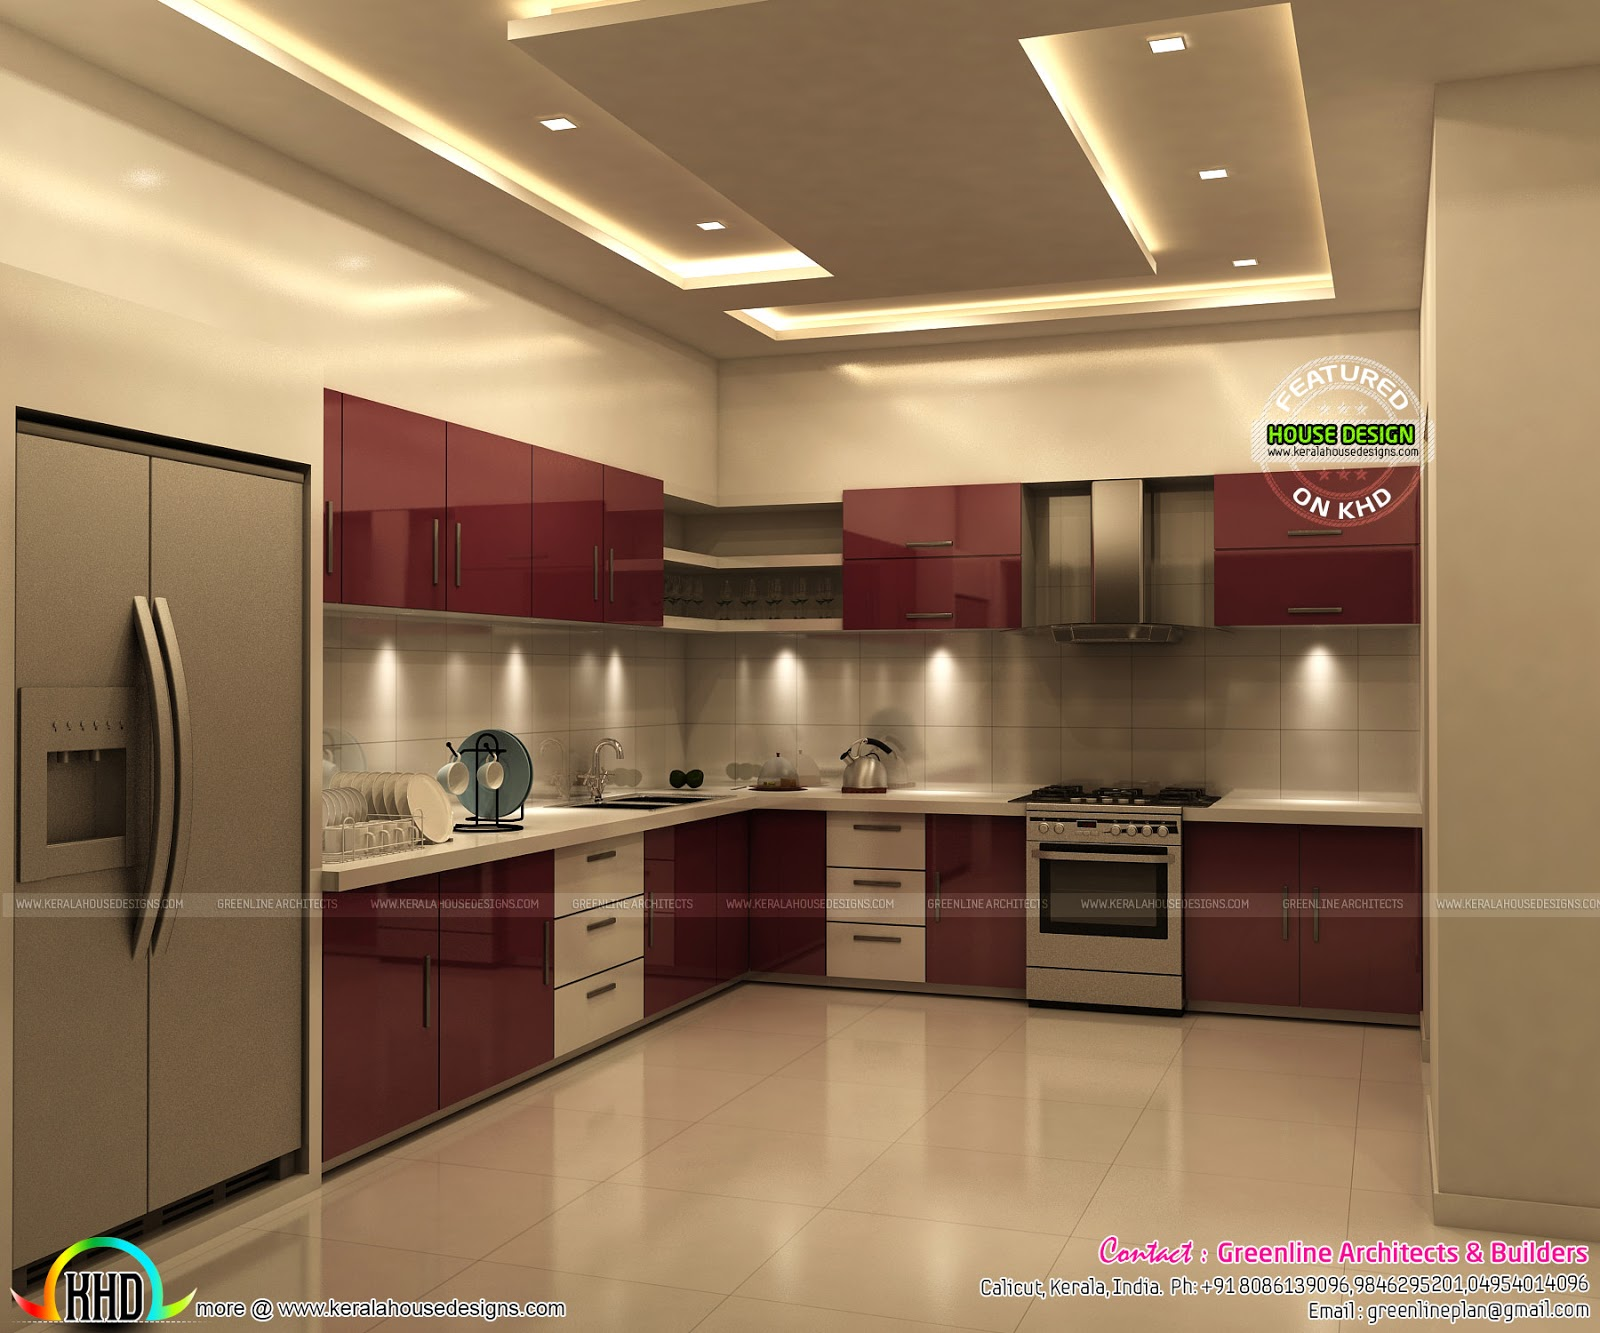 Superb kitchen and bedroom interiors kerala home design for Interior design for kitchen in kerala